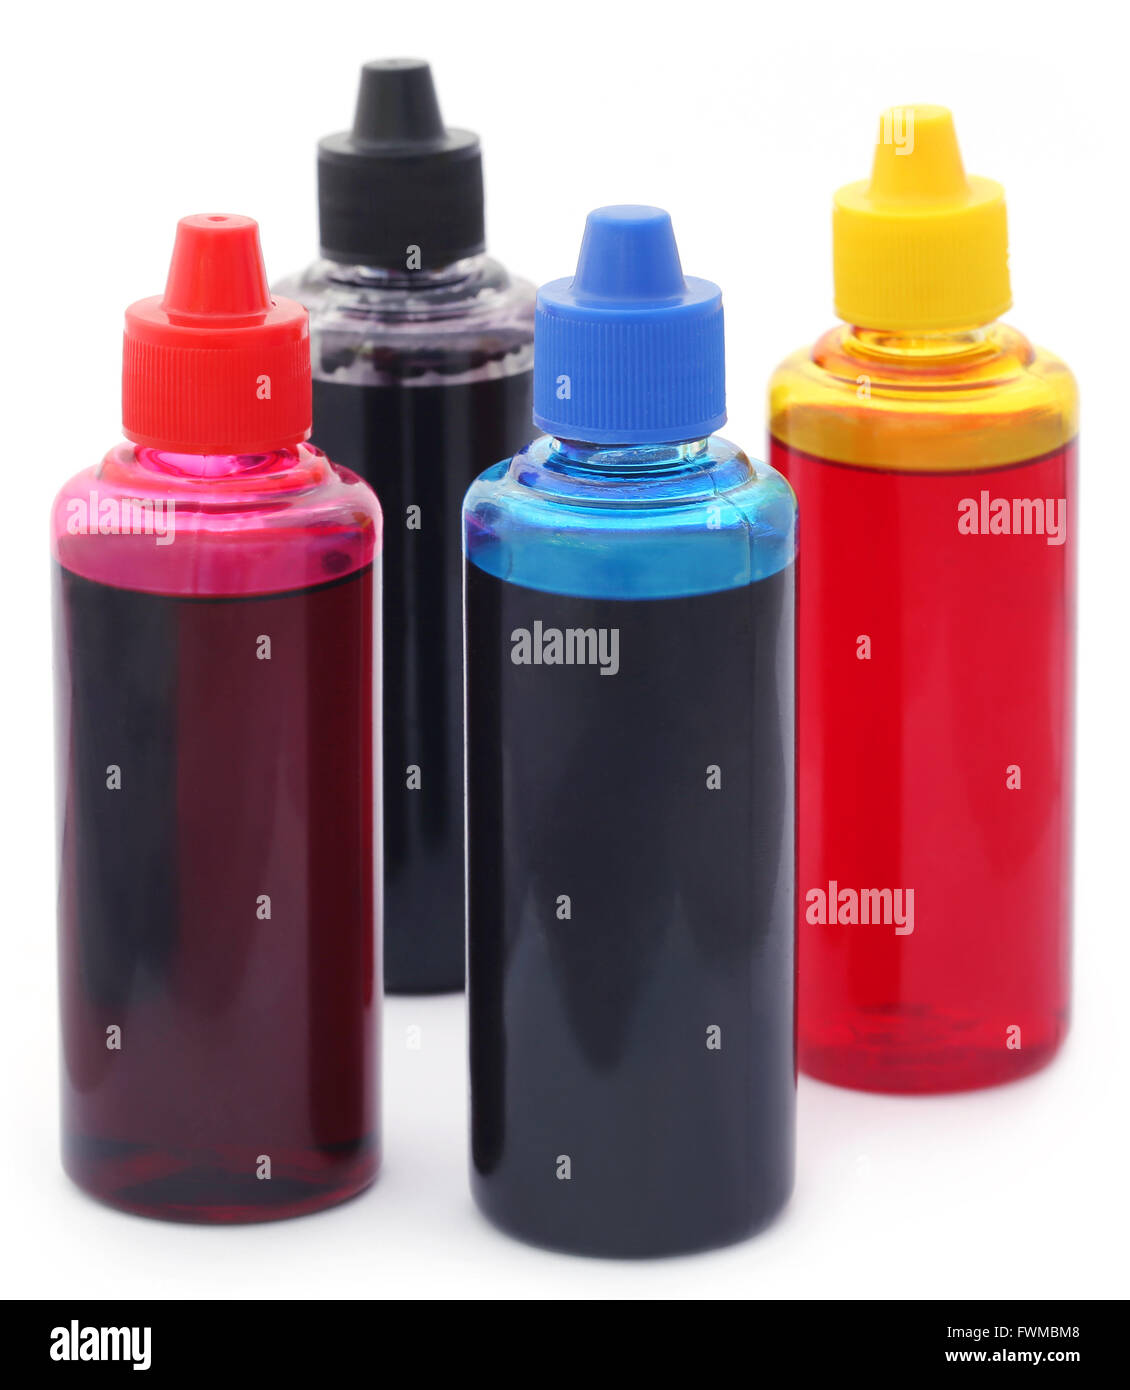 Printer ink bottles over white background - Stock Image